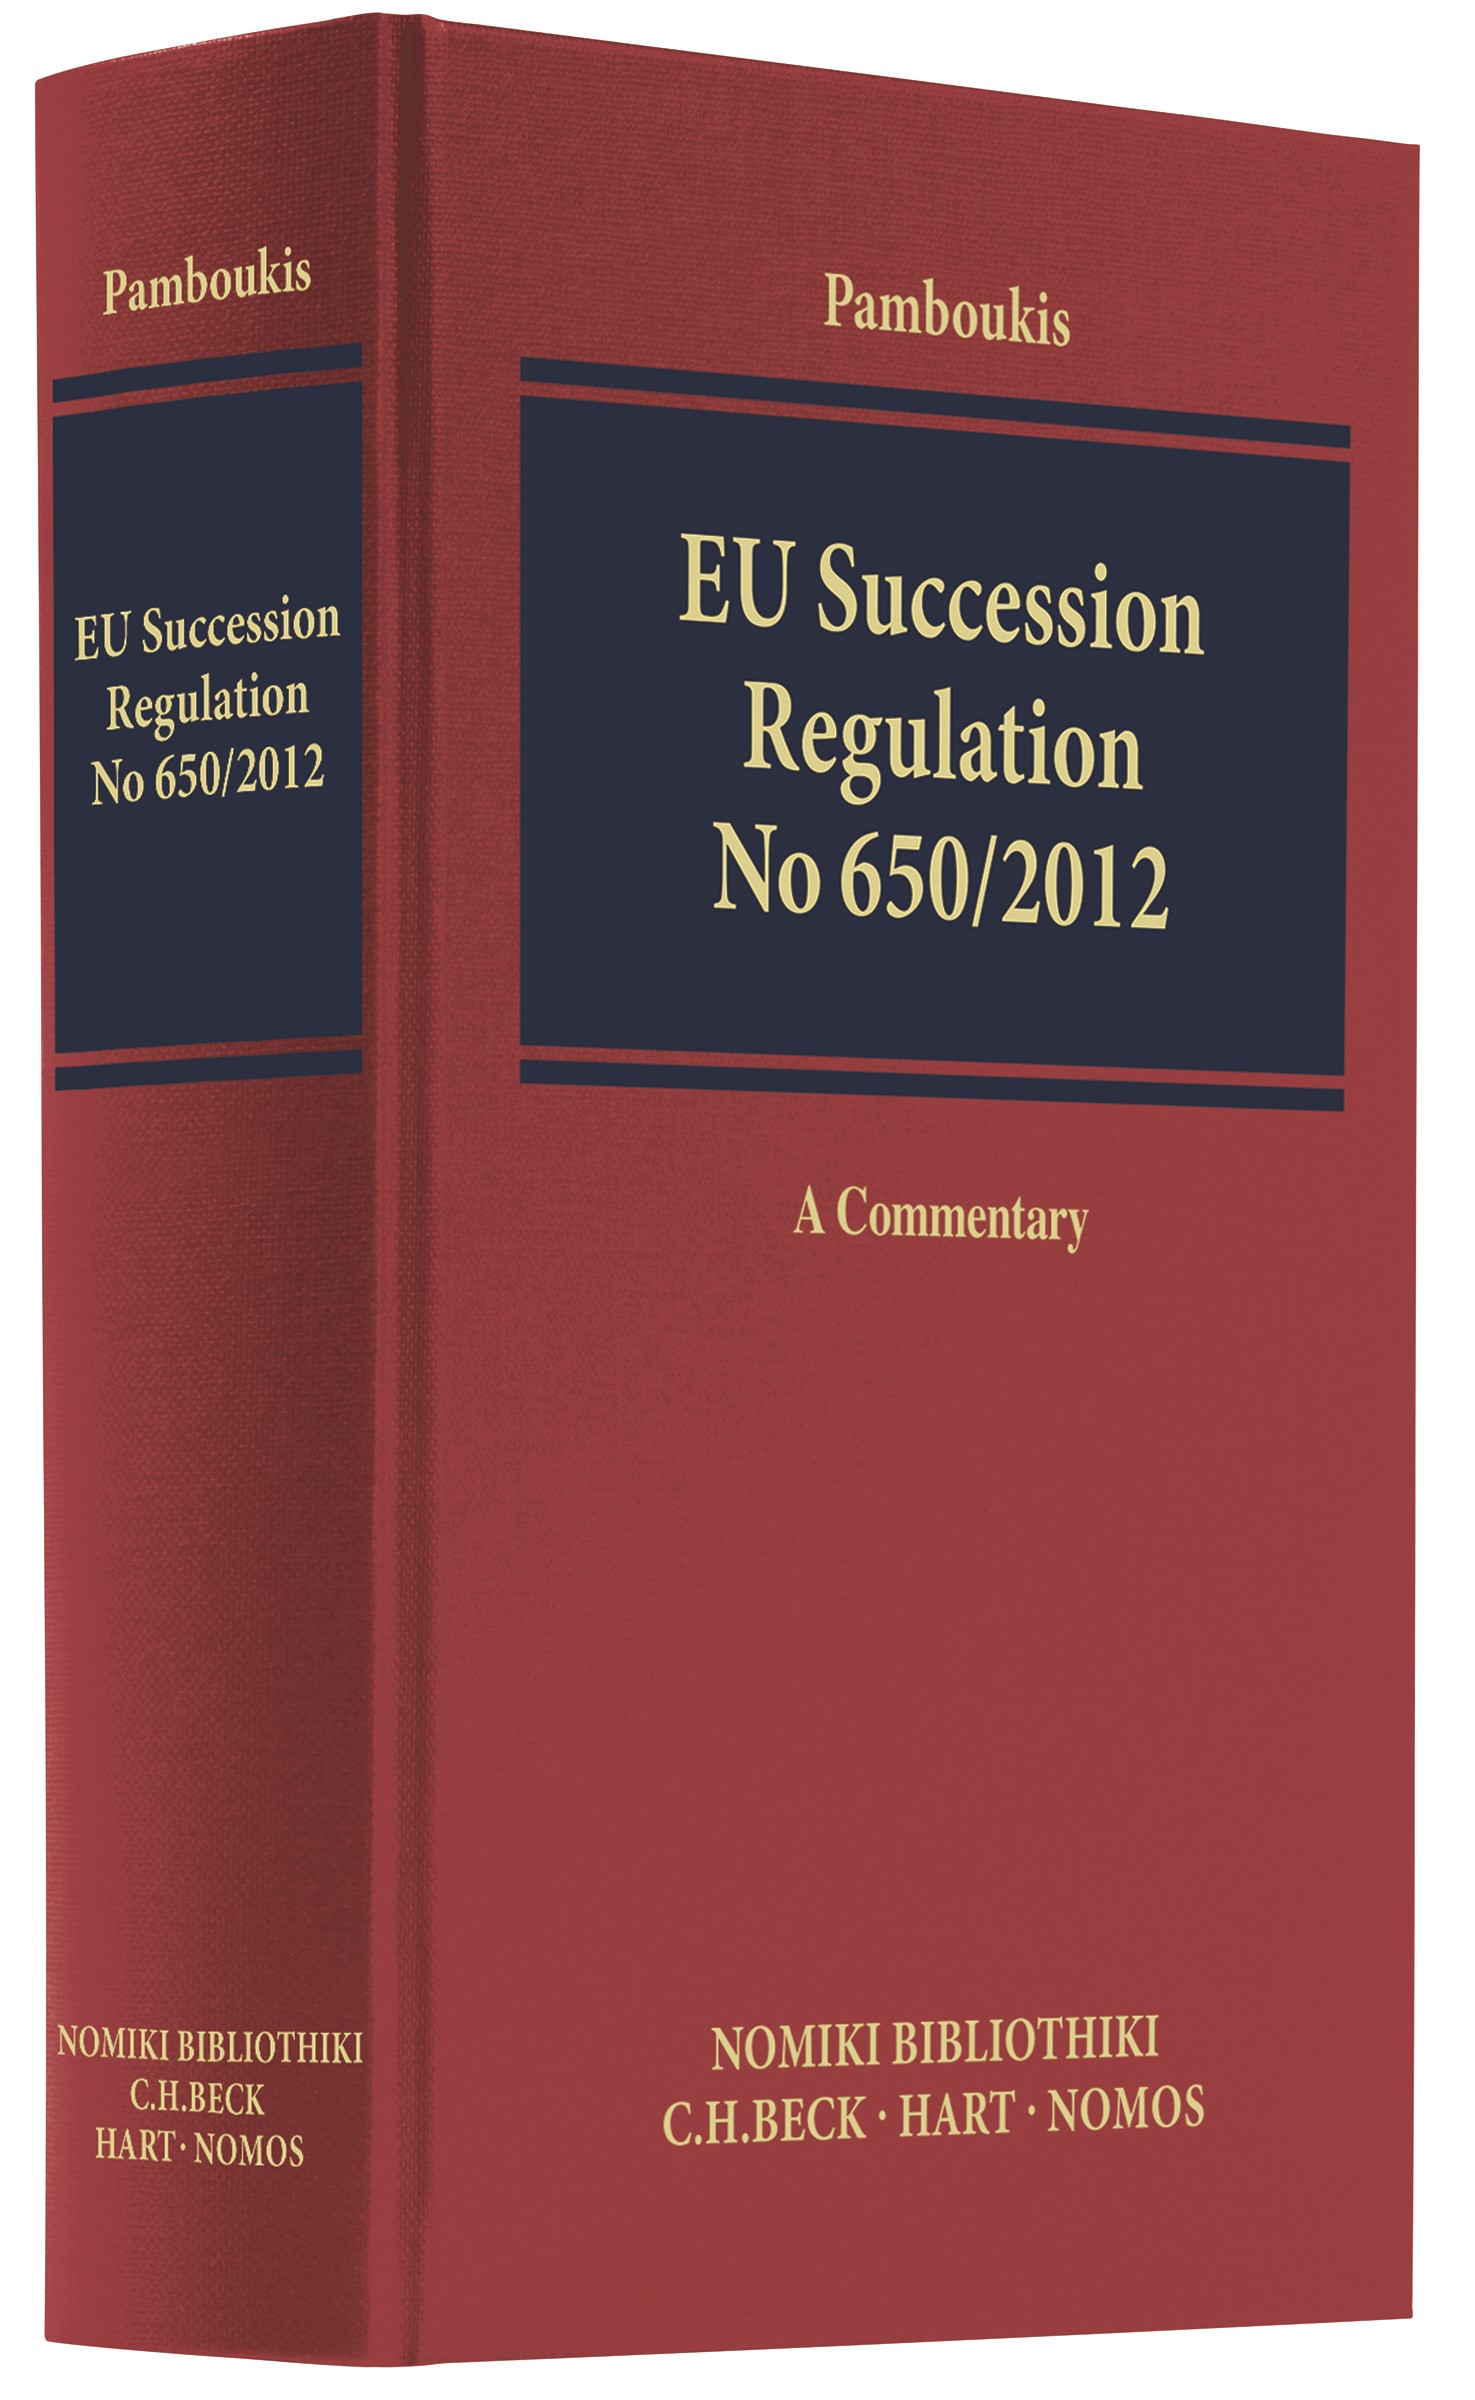 EU Succession Regulation No 650/2012 | Pamboukis, 2017 | Buch (Cover)